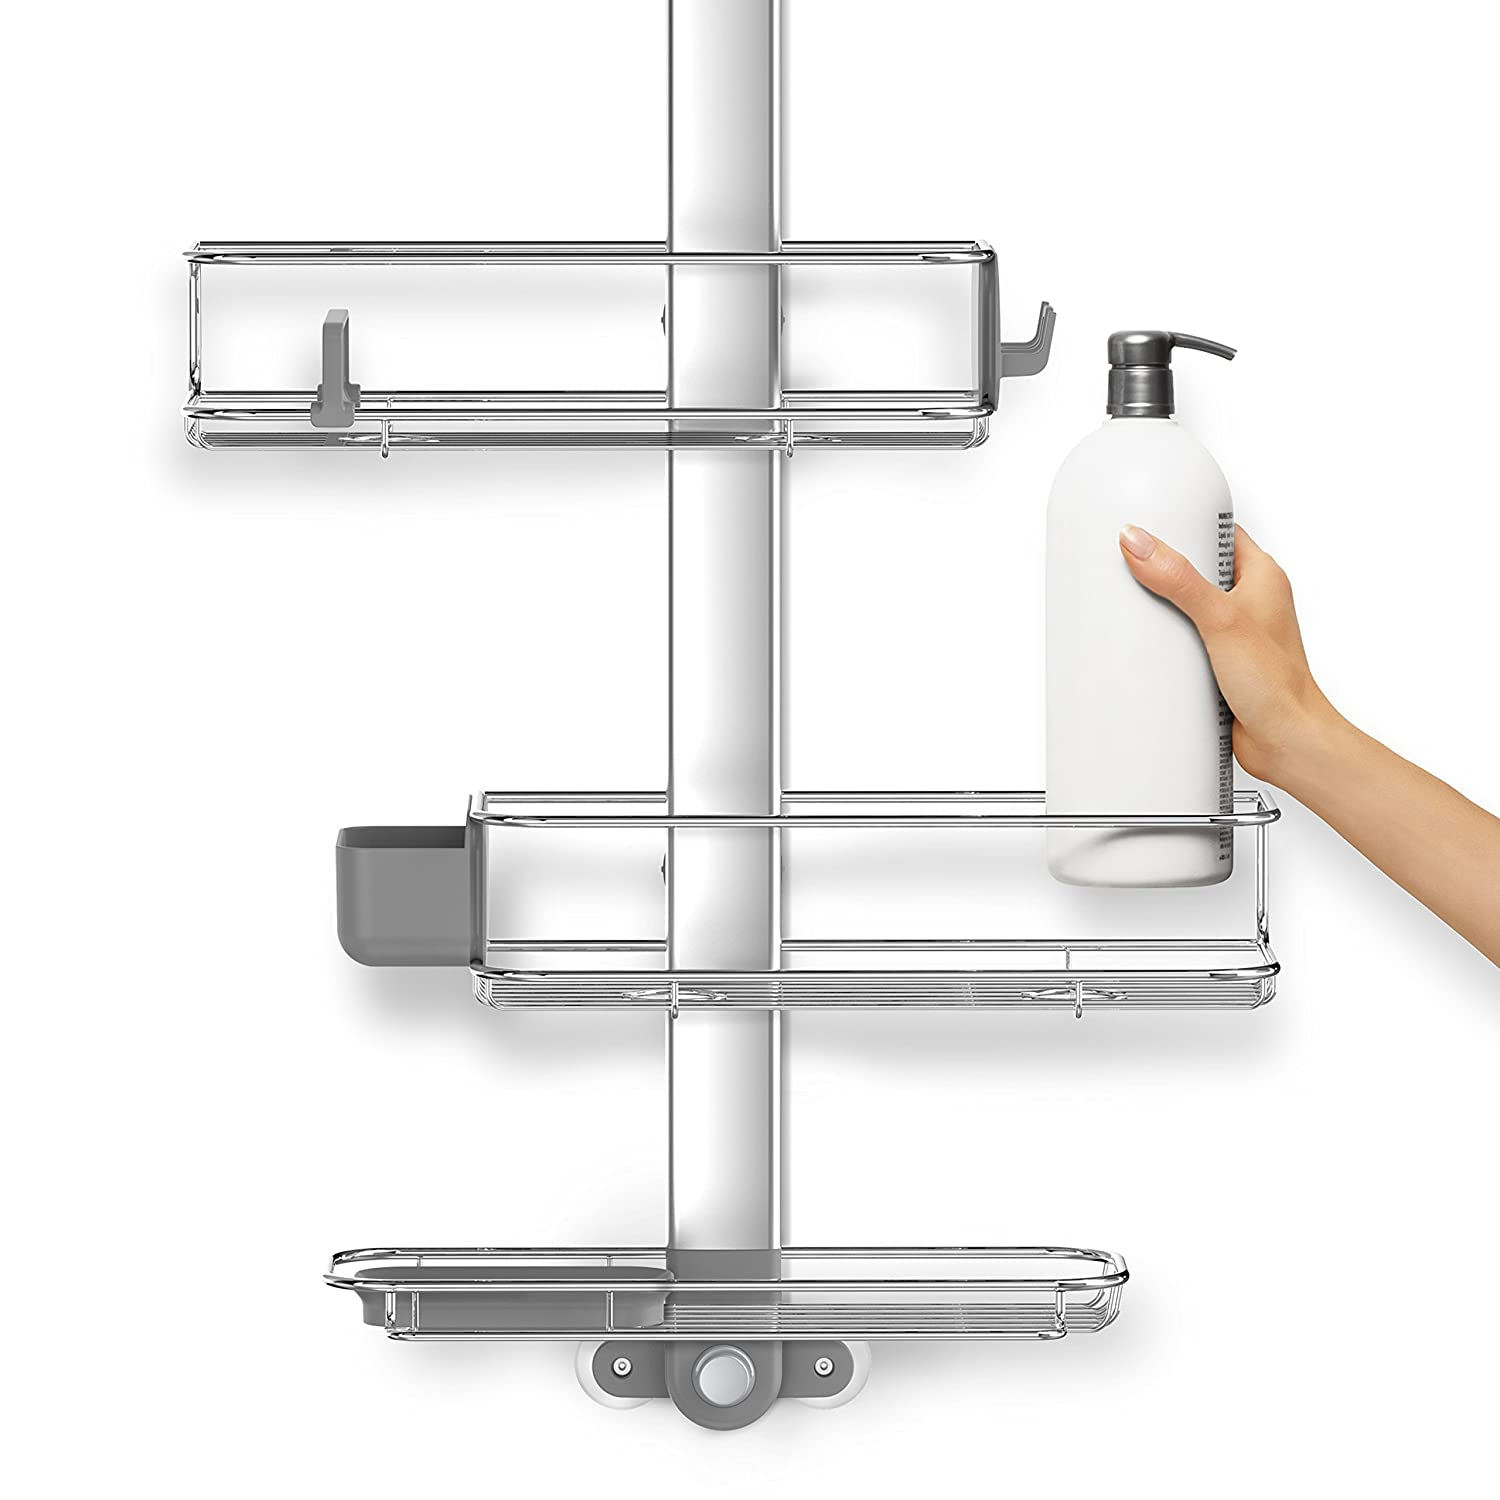 Amazon.com: simplehuman Adjustable Shower Caddy Plus With Extendable ...